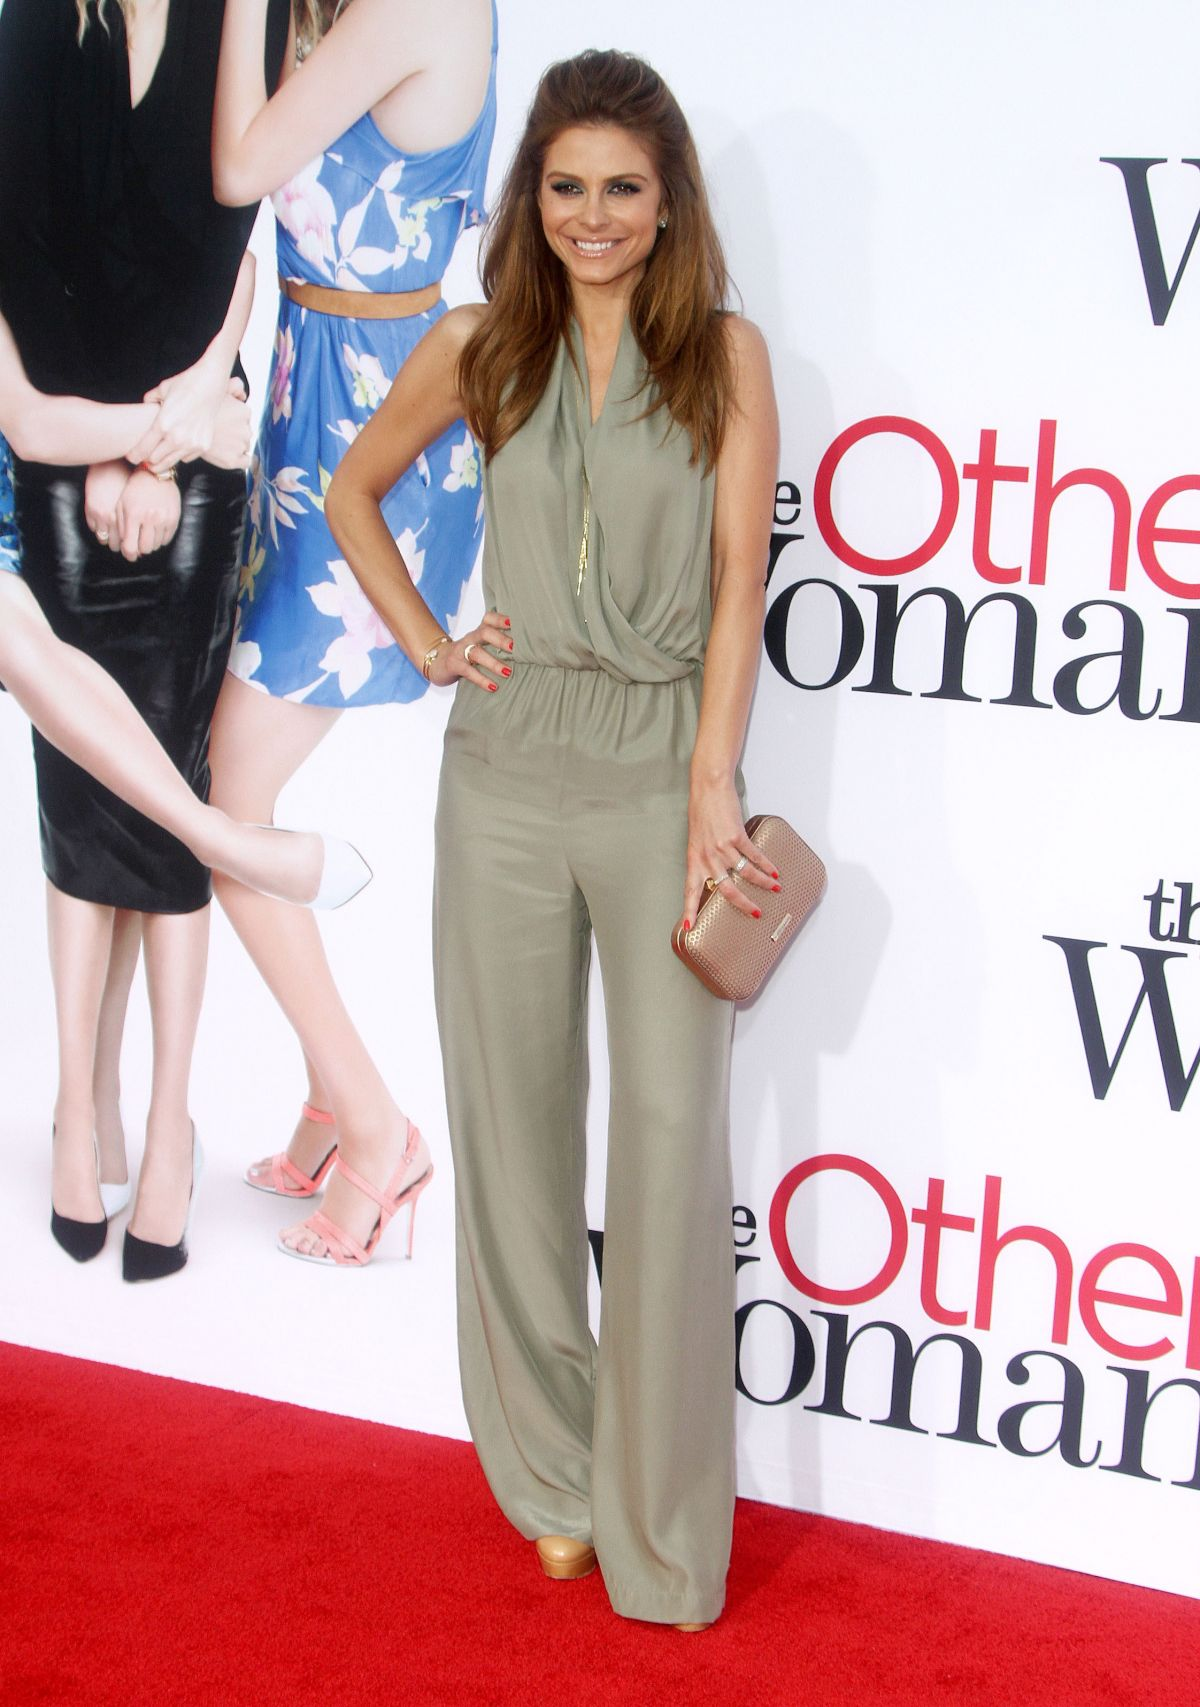 MARIA MENOUNOS at The Other Woman Premiere in Westwood